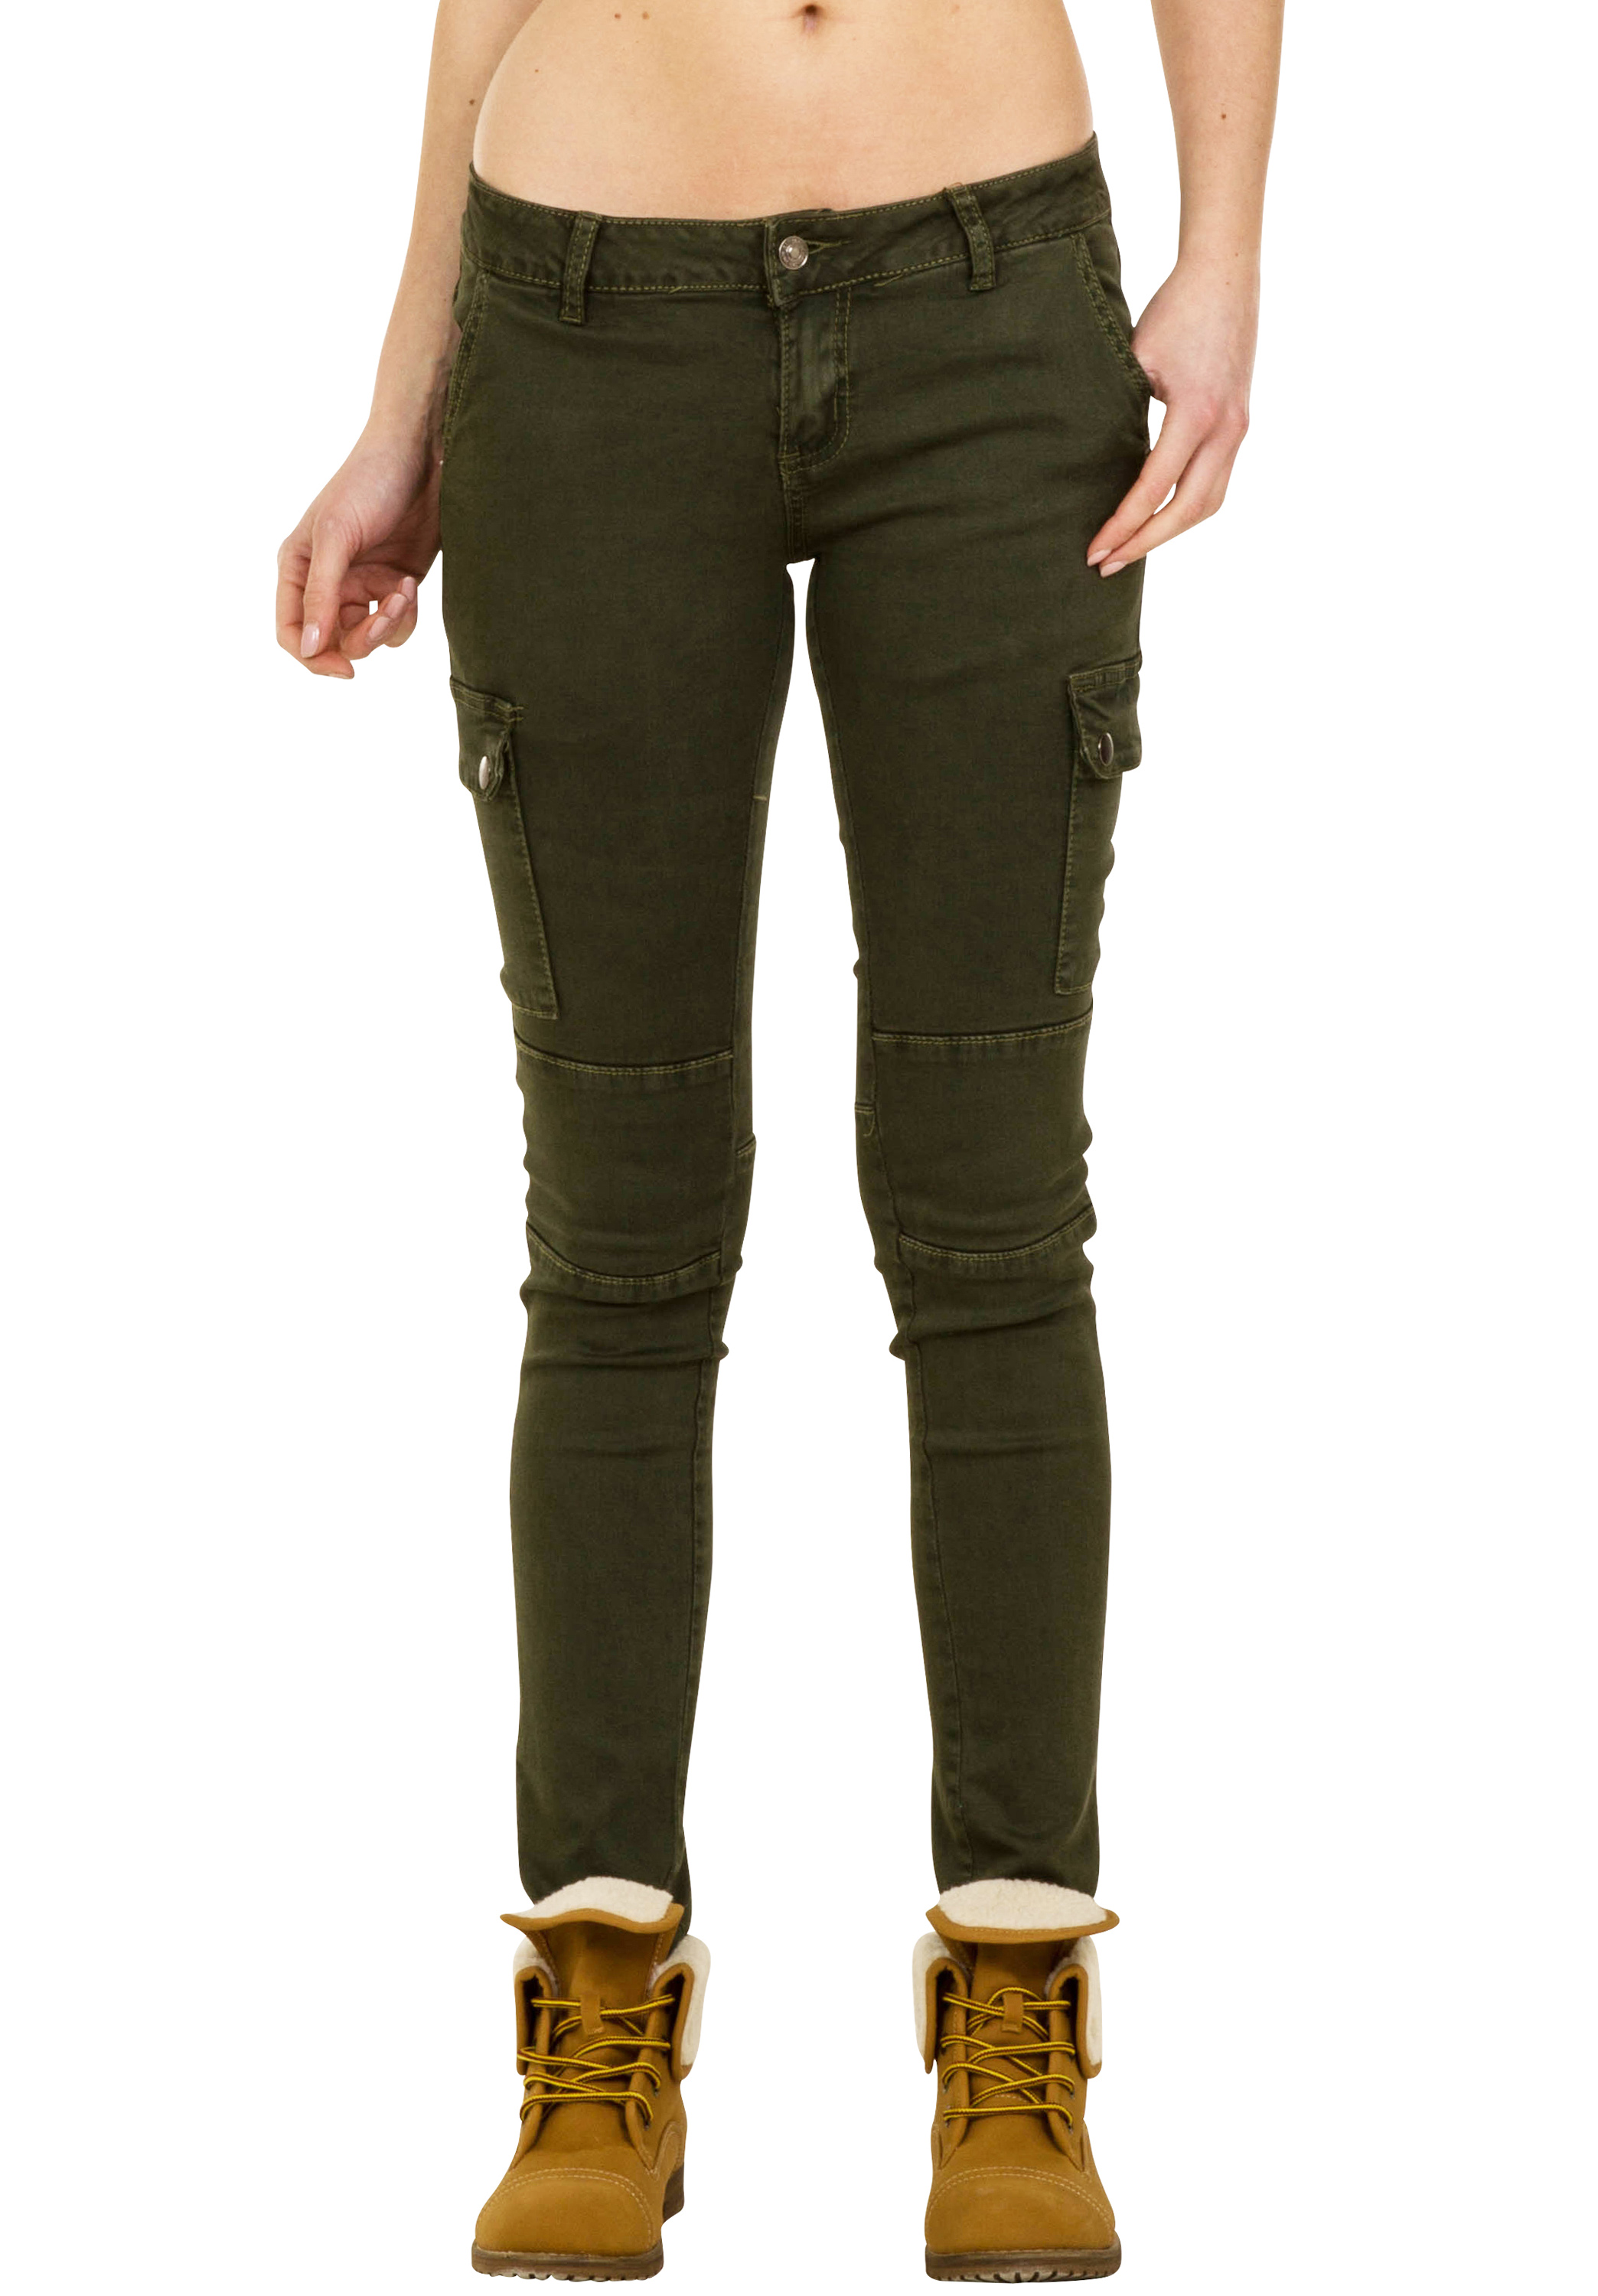 Perfect Cute Cargo Pants Tags Clothes Pants Green Girl Trousers Related